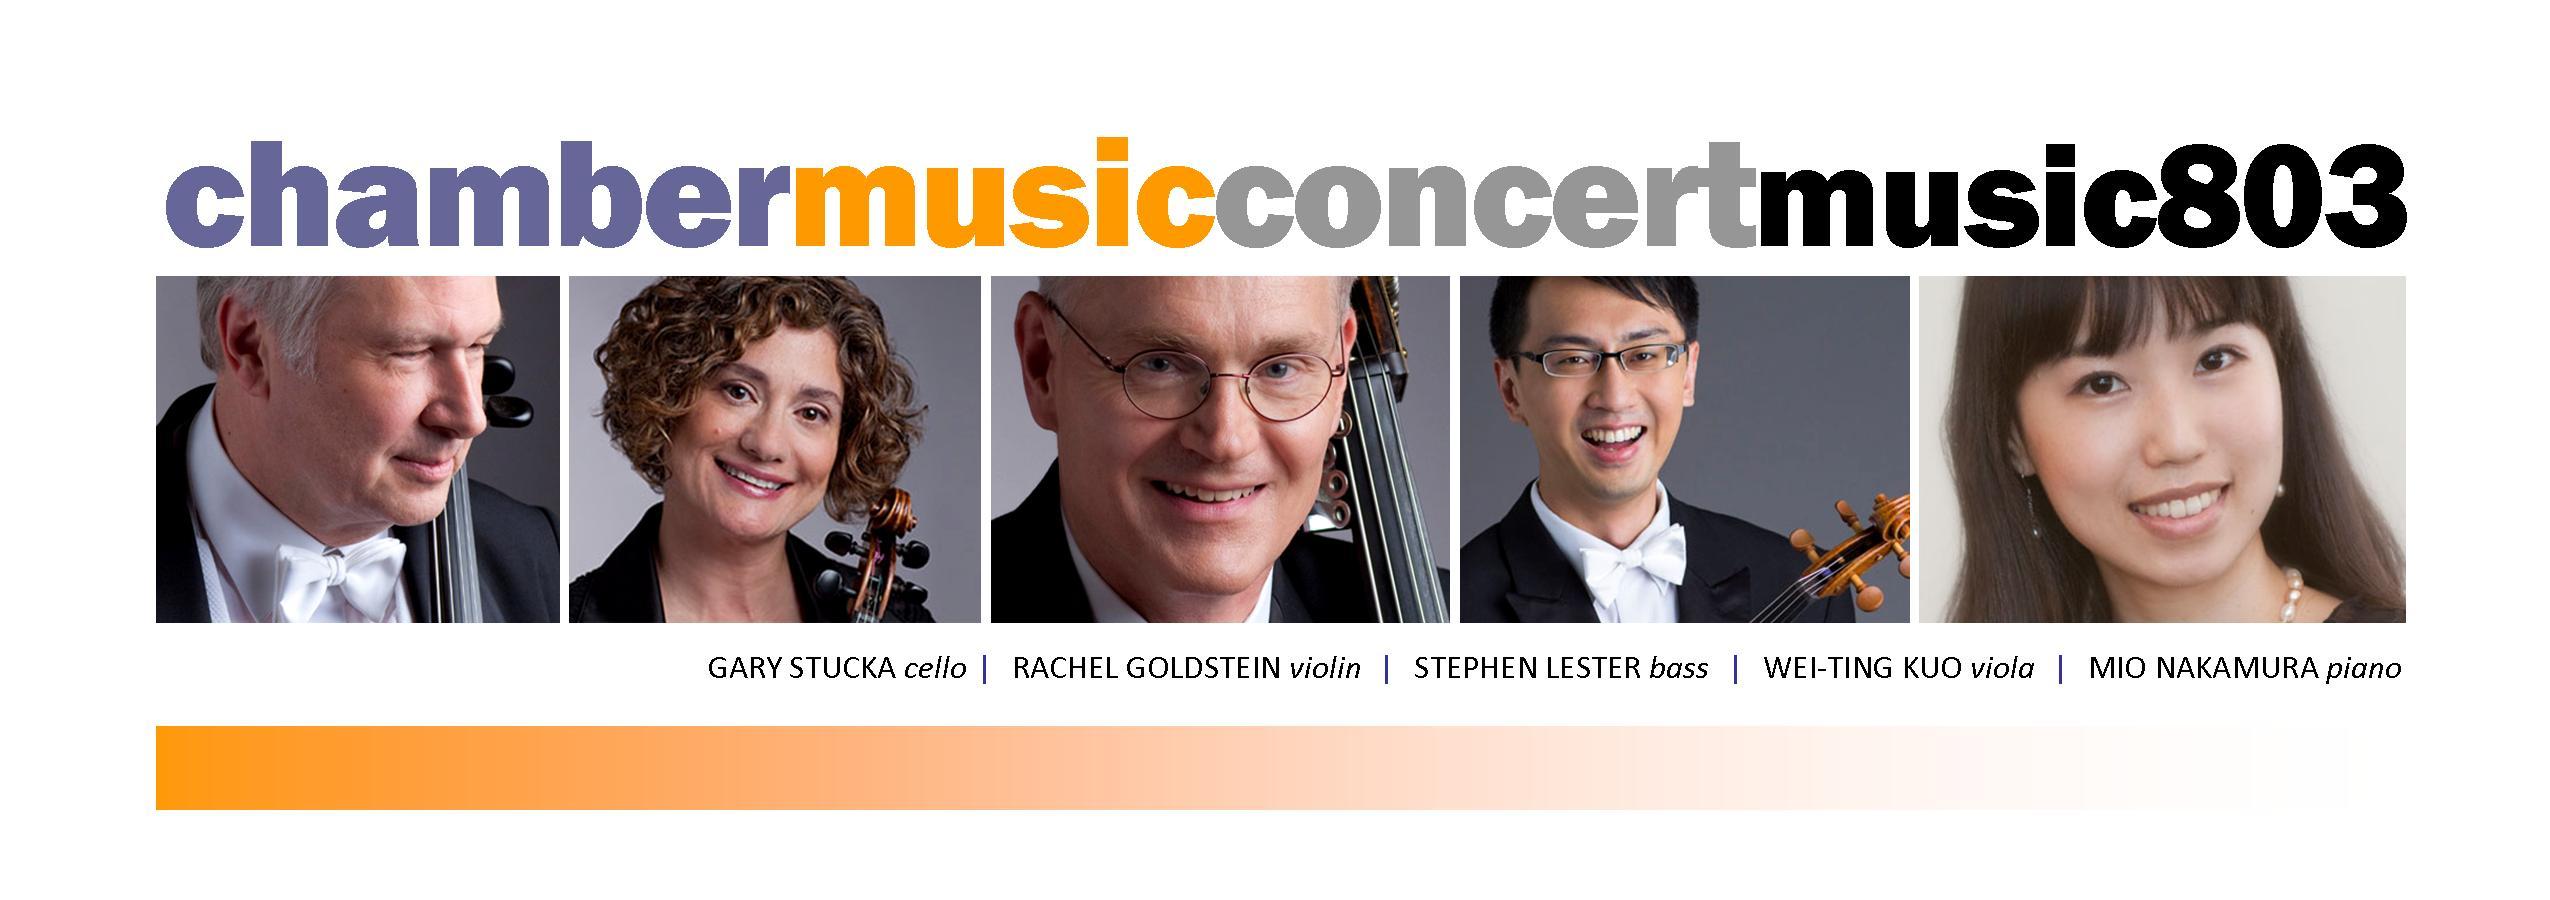 Free Concert on Friday, October 12 at 7:30 p.m.